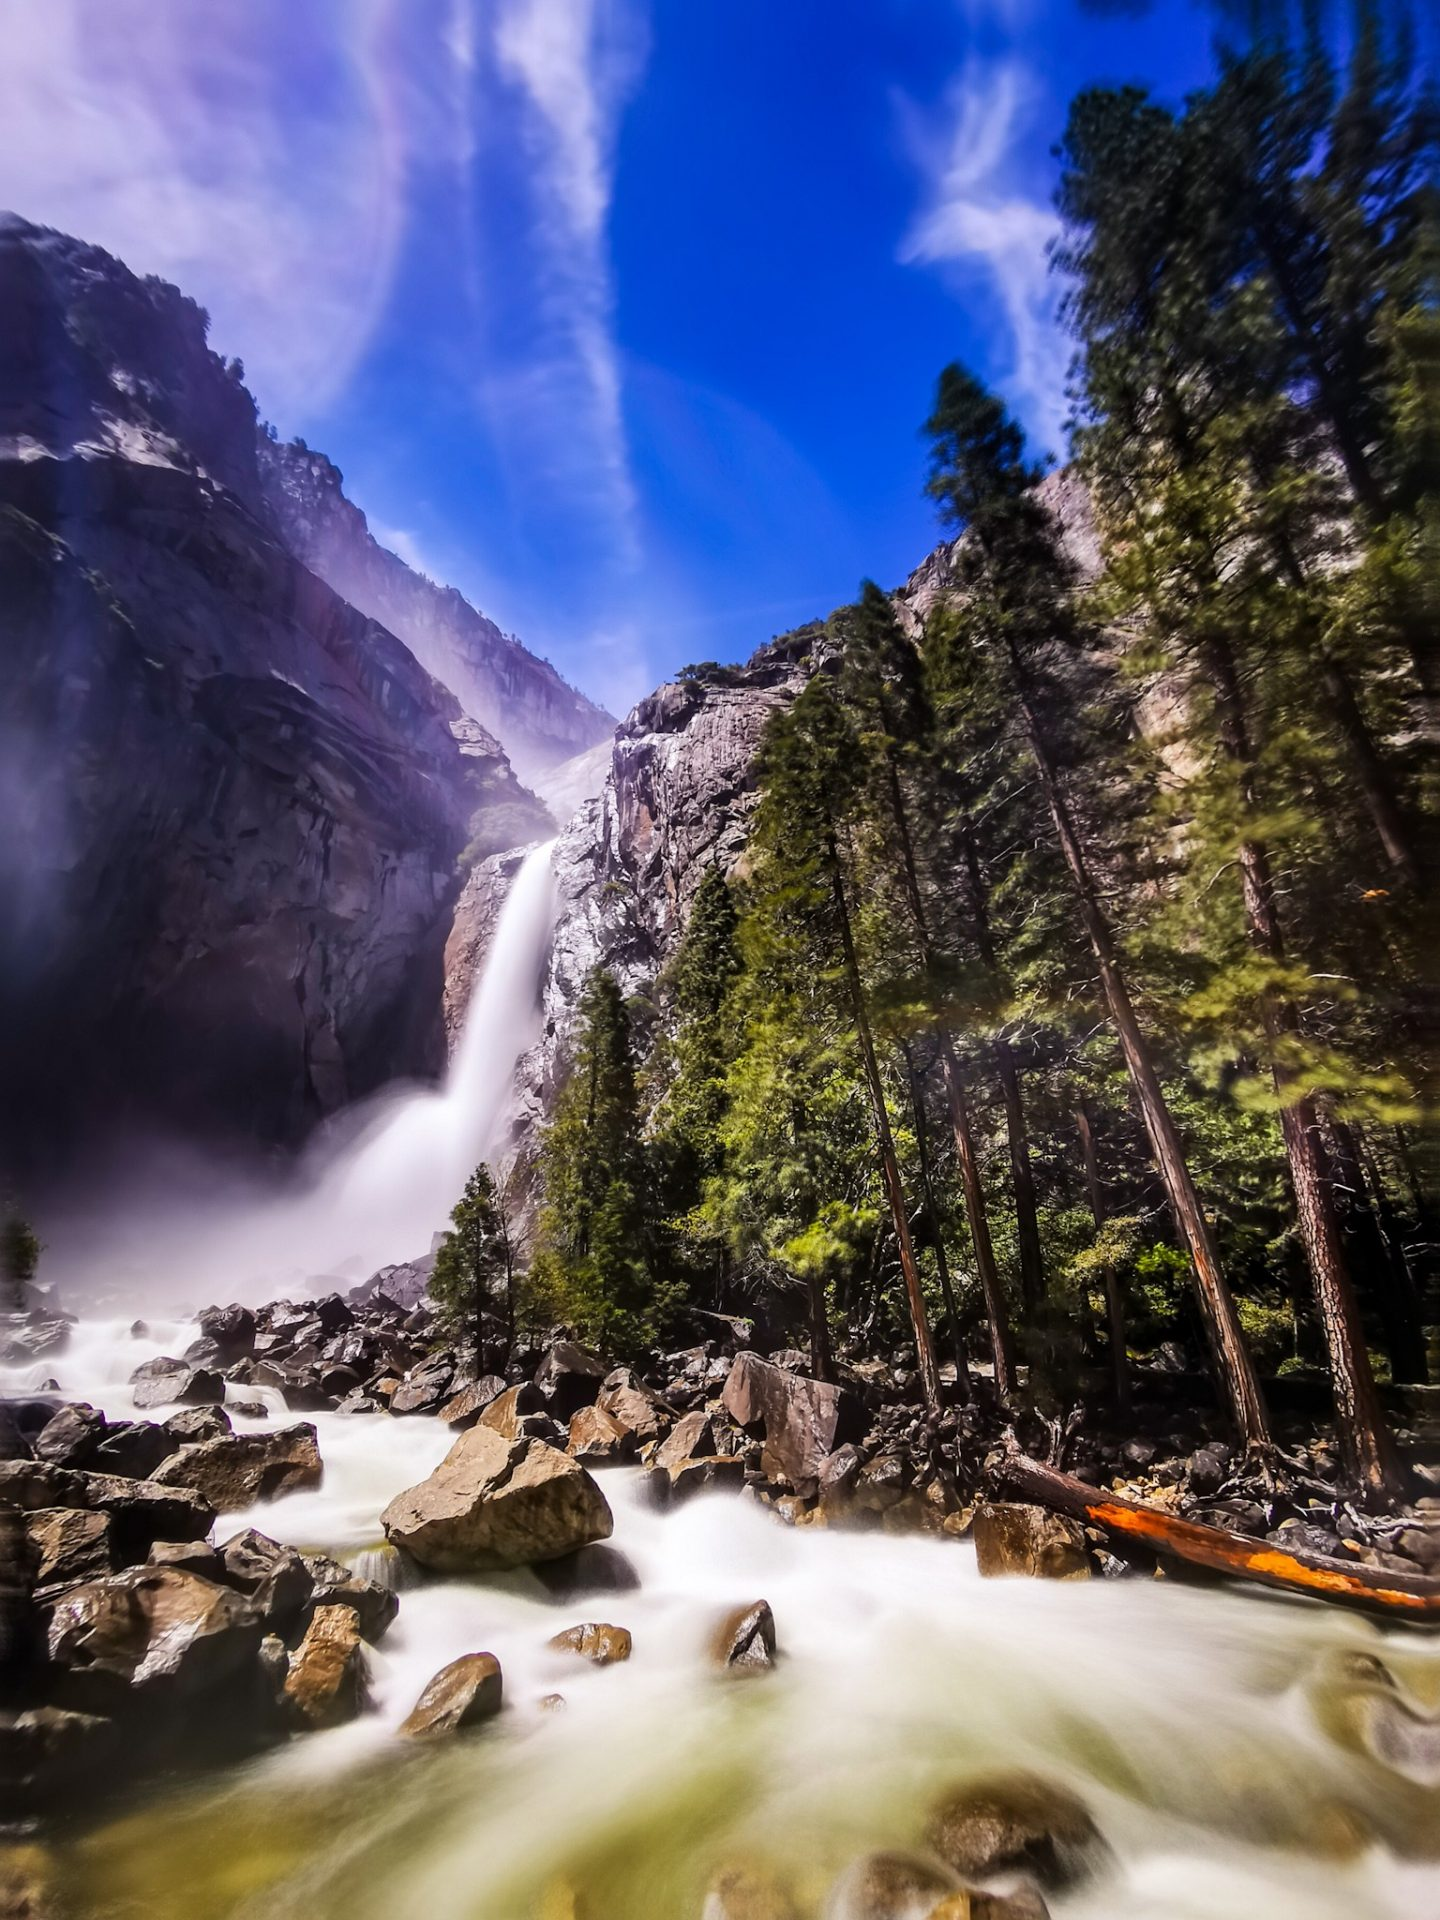 Yosemite Falls 2 days in Yosemite National Park Yosemite itinerary